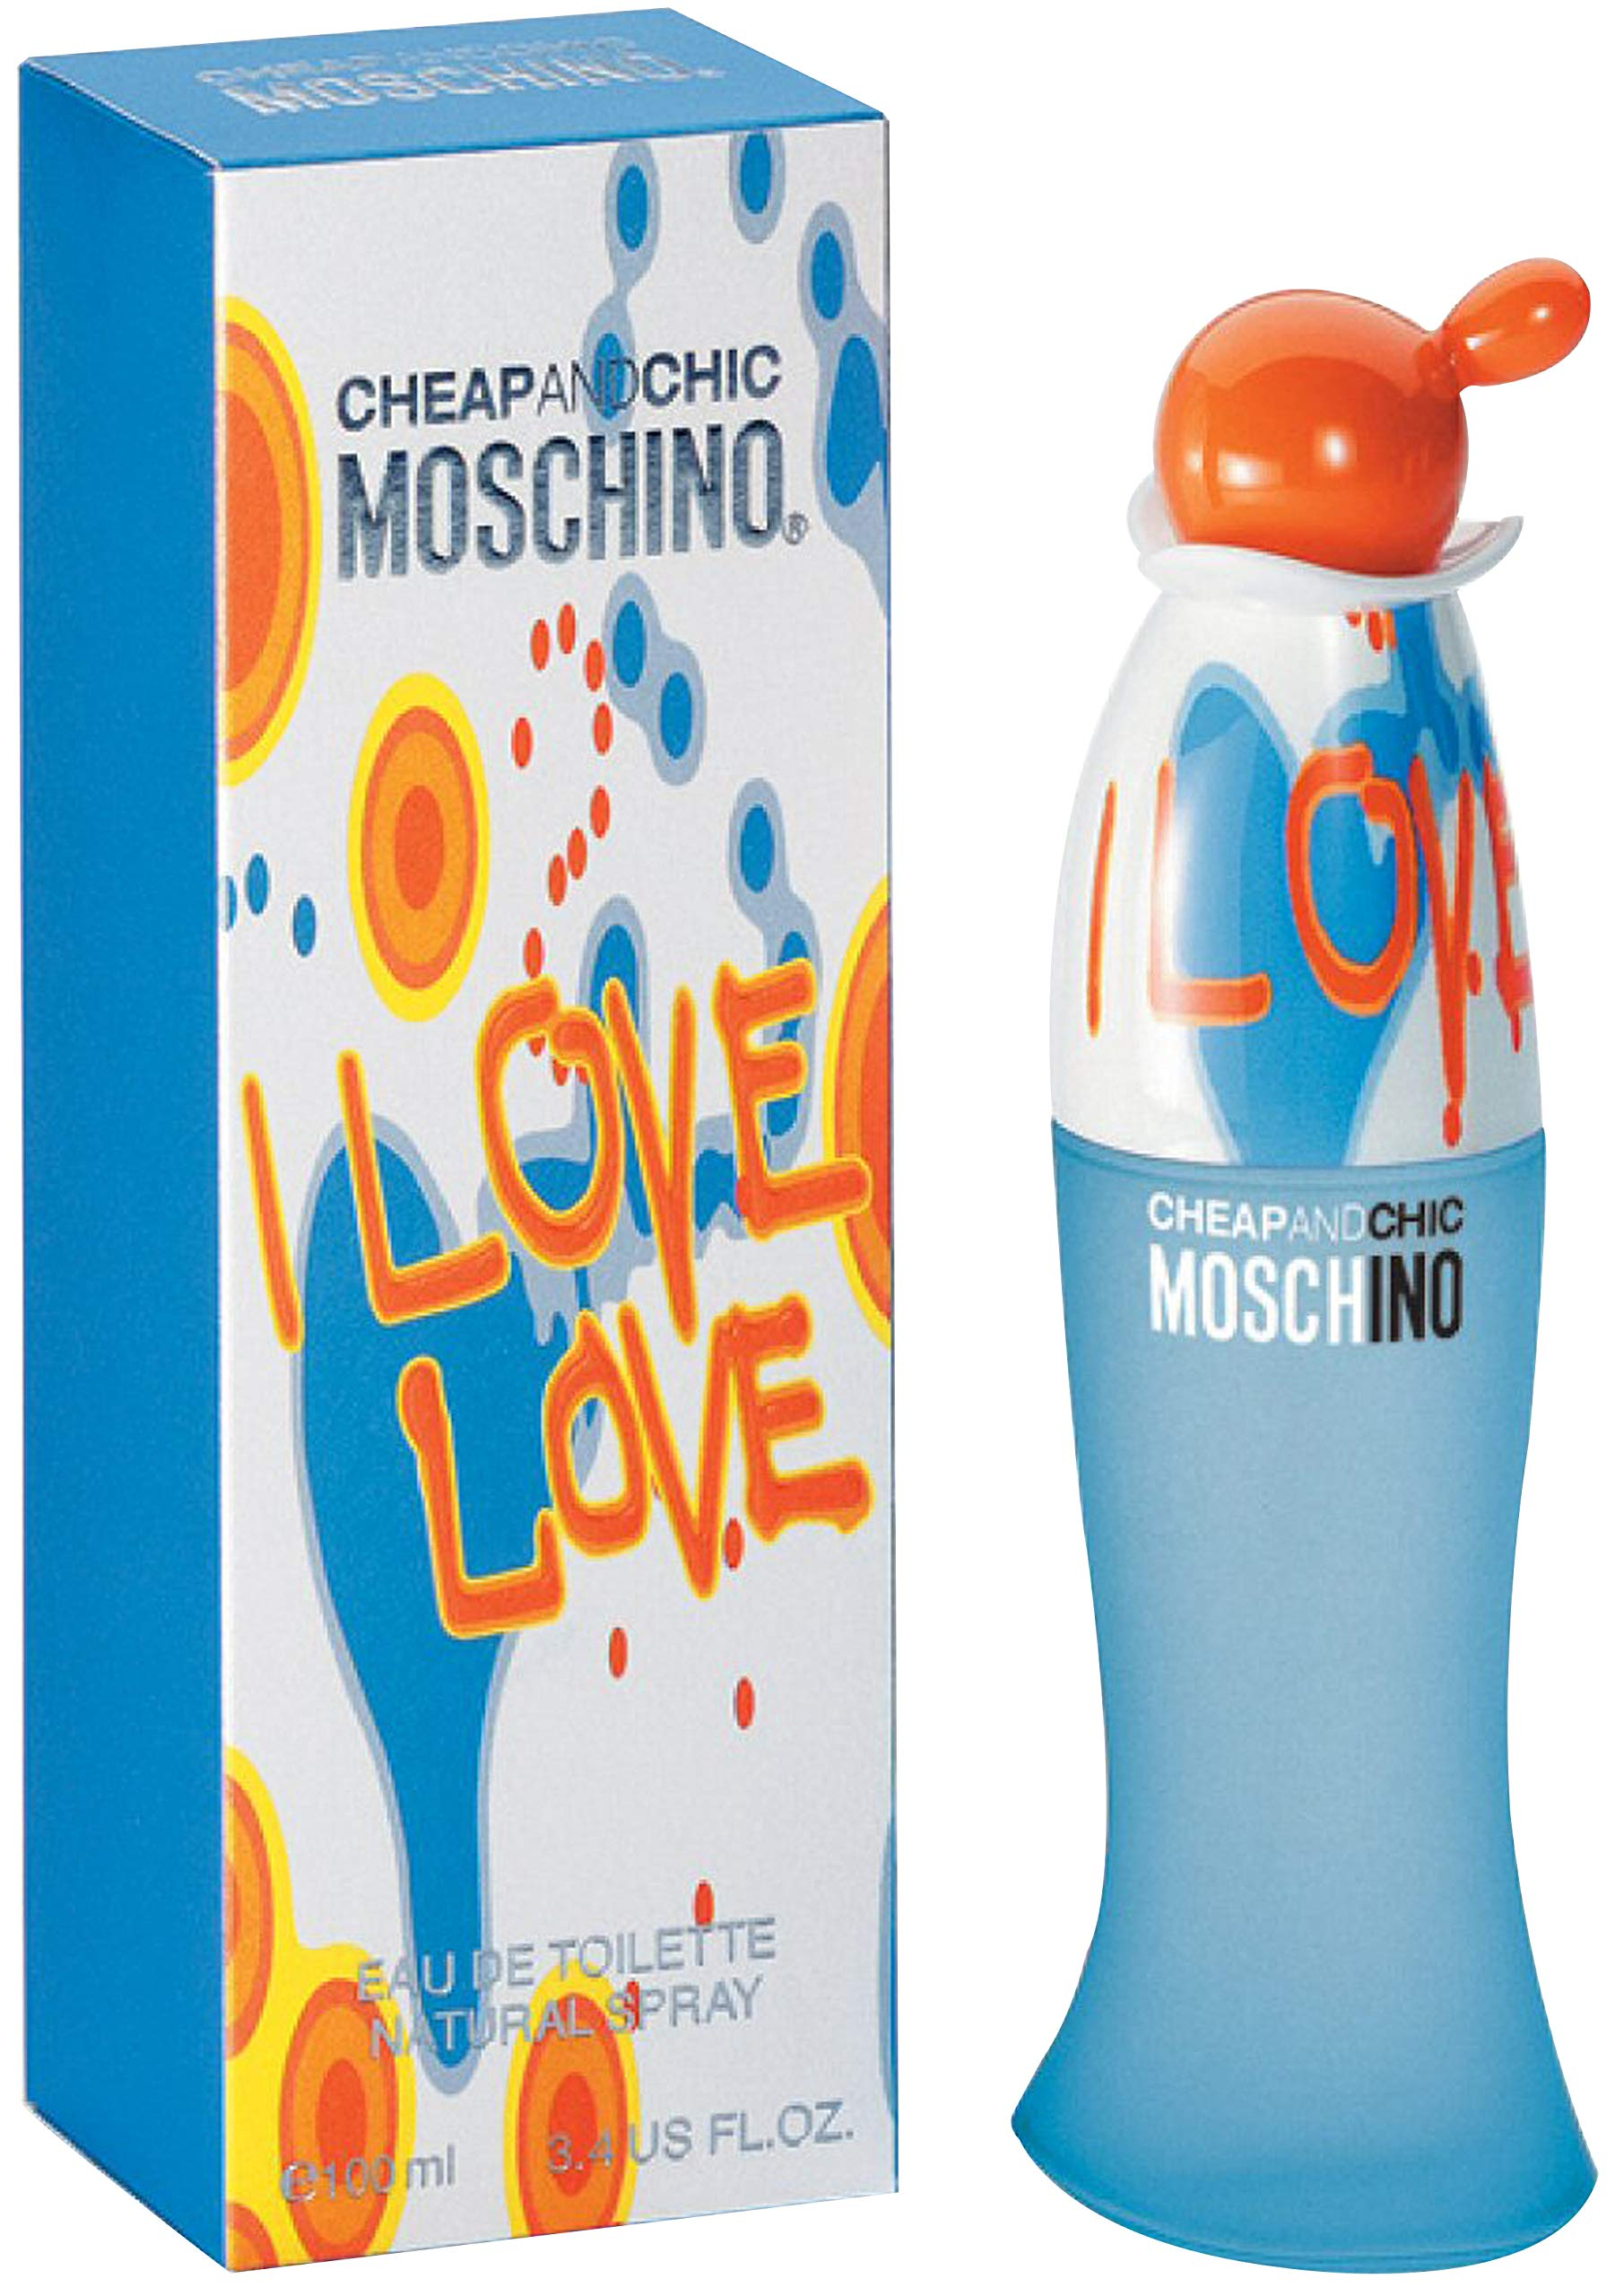 I Love Love Cheap and Chic by Moschino for Women 3.4 oz Eau de Toilette Spray by MOSCHINO